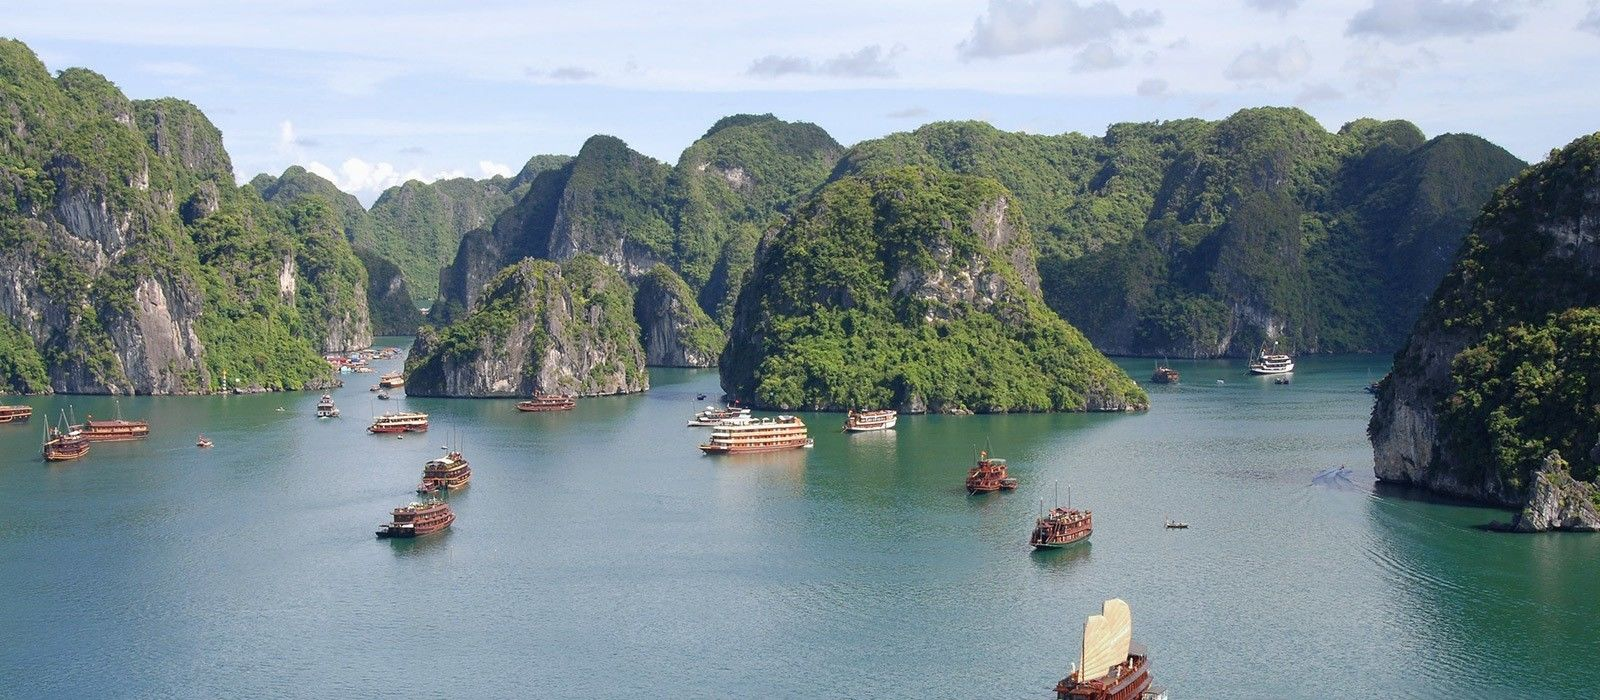 Travel Destination Vietnam